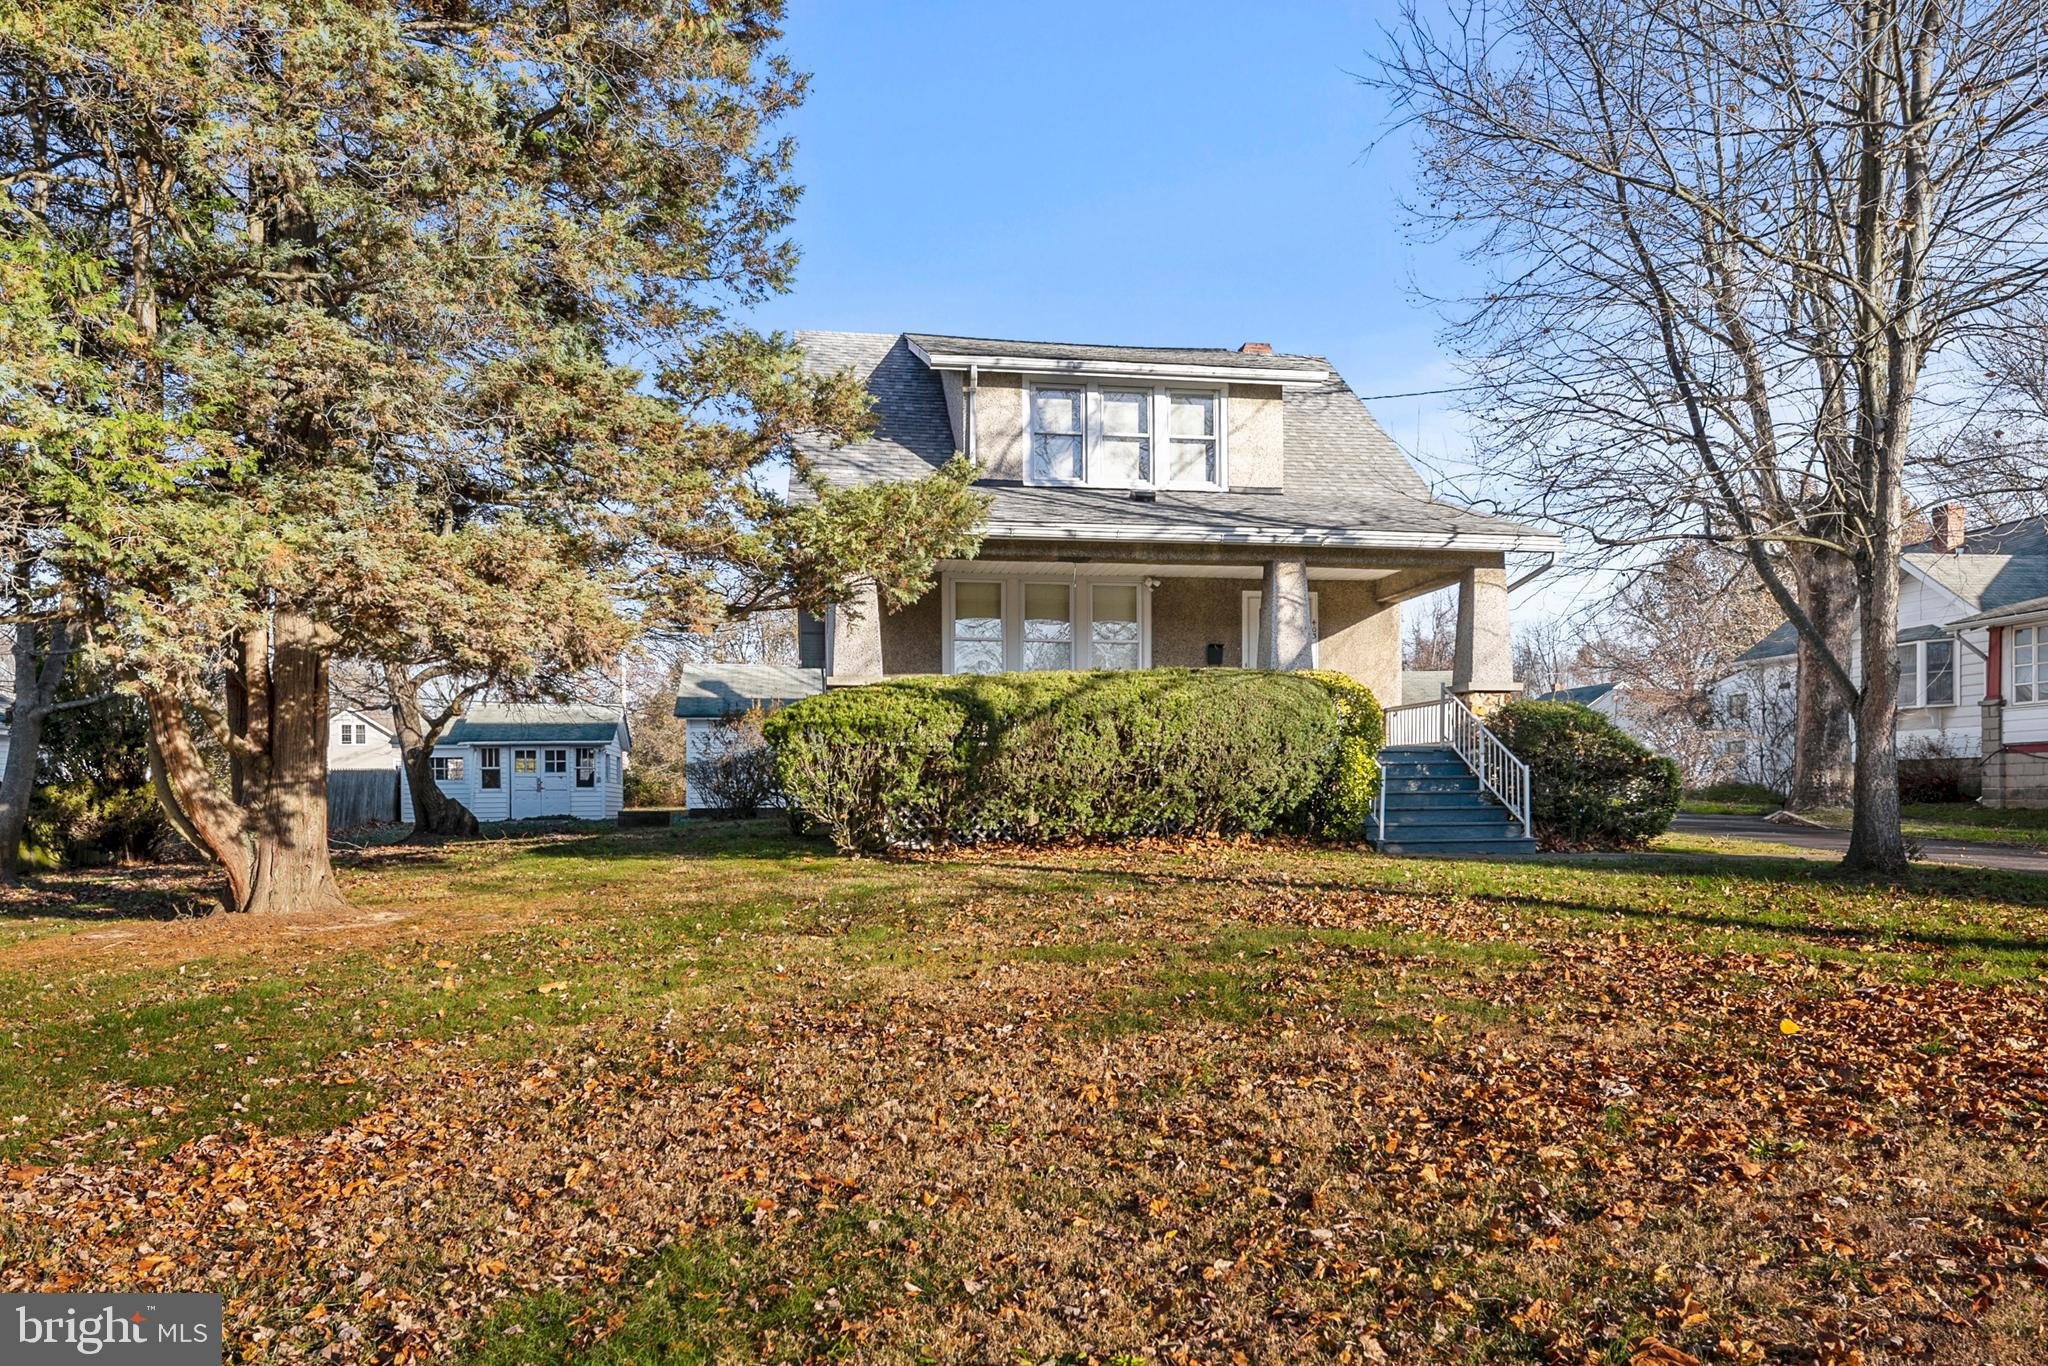 Welcome to this 3 bedroom 2 bath home in beautiful town of North East Maryland. Property is just ove